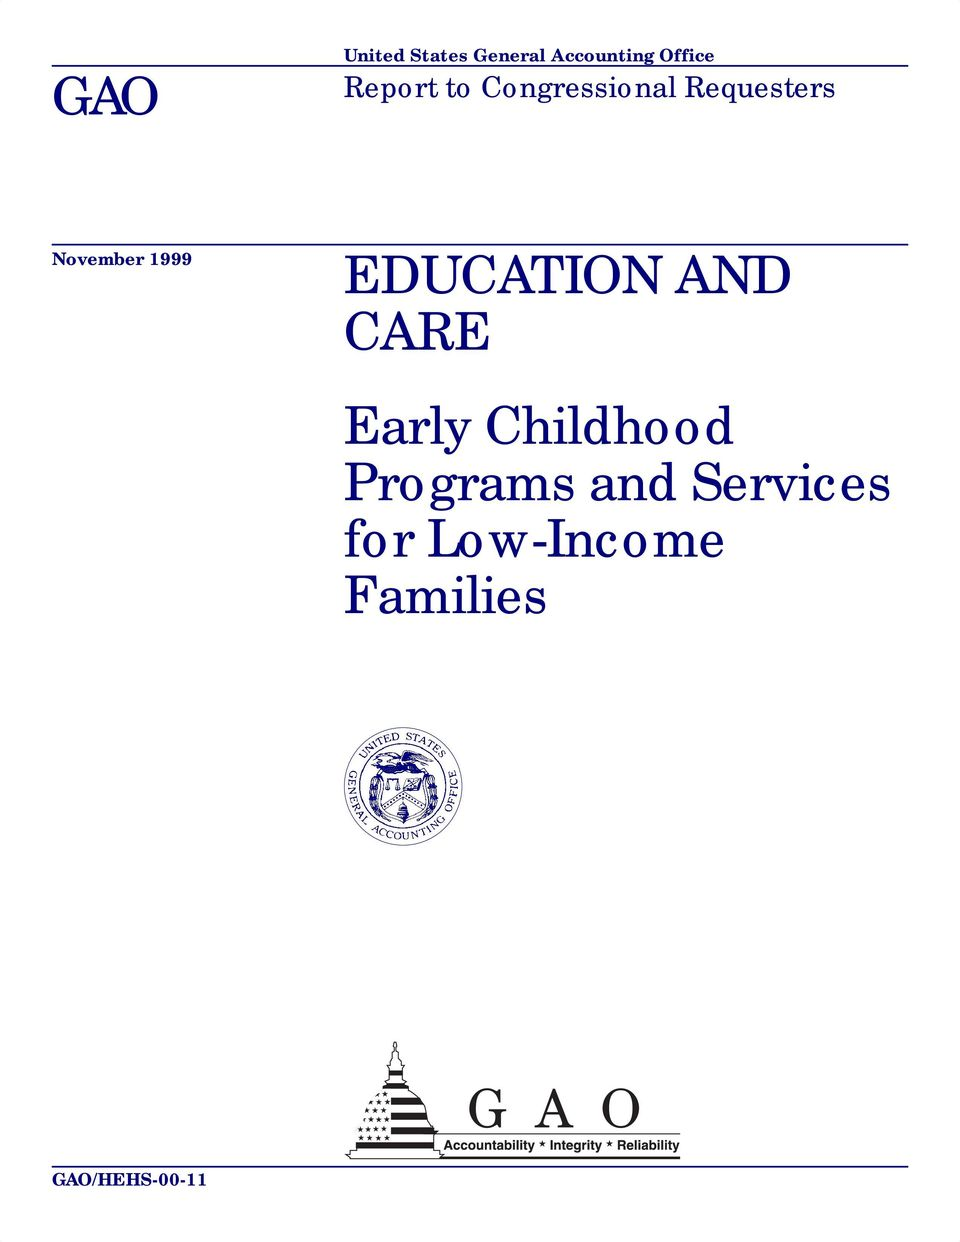 1999 EDUCATION AND CARE Early Childhood